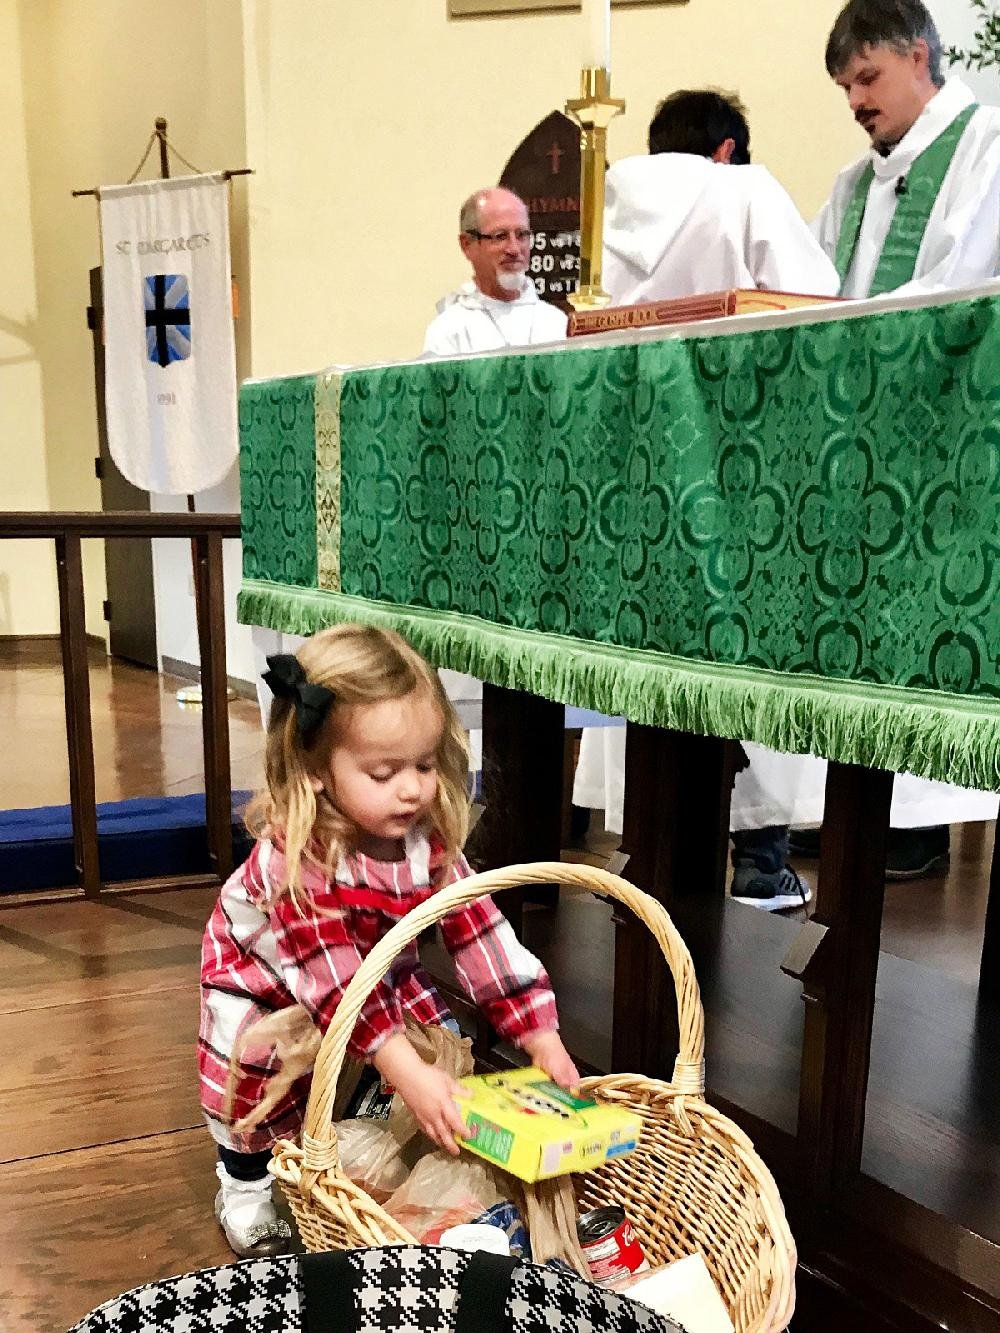 A young parishioner at St. Margaret's Episcopal Church in Little Rock makes a food contribution to the church's offering basket